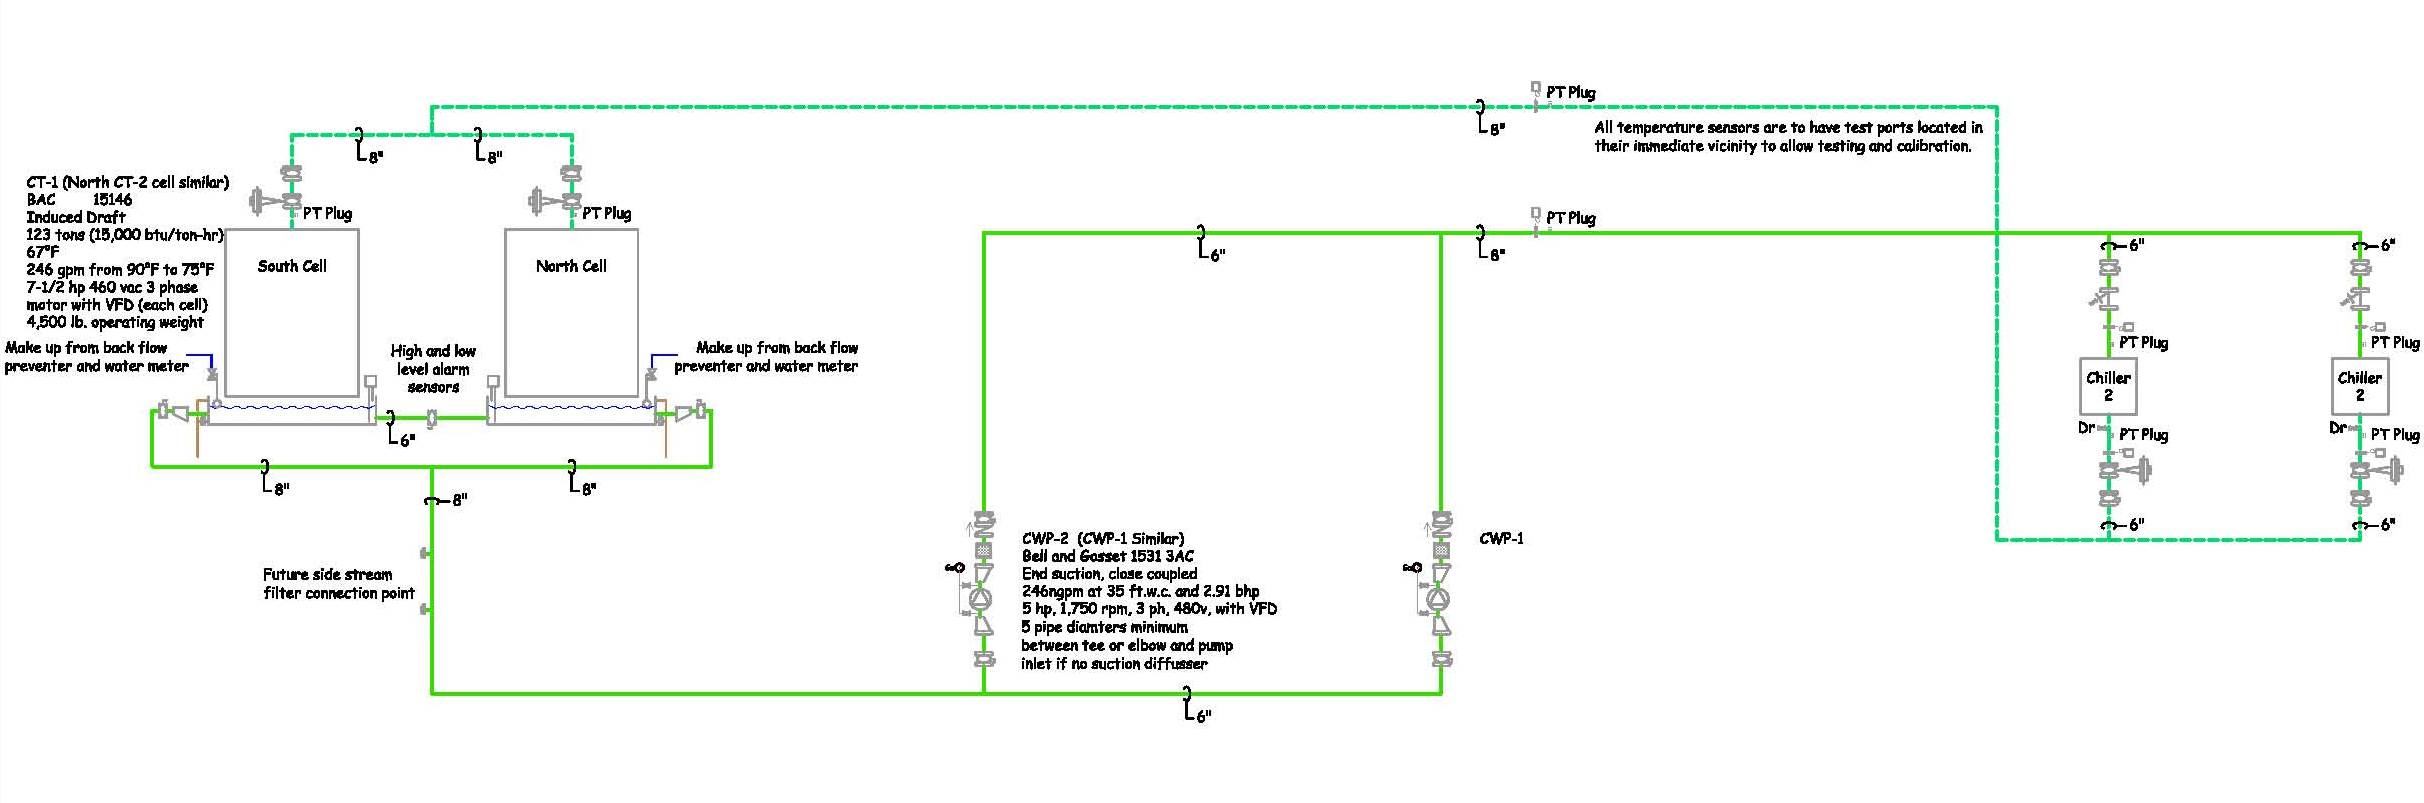 System Diagrams Breaking The Rules A Step By Guide Plus Some If You Are Looking For Formal Wiring Diagram There